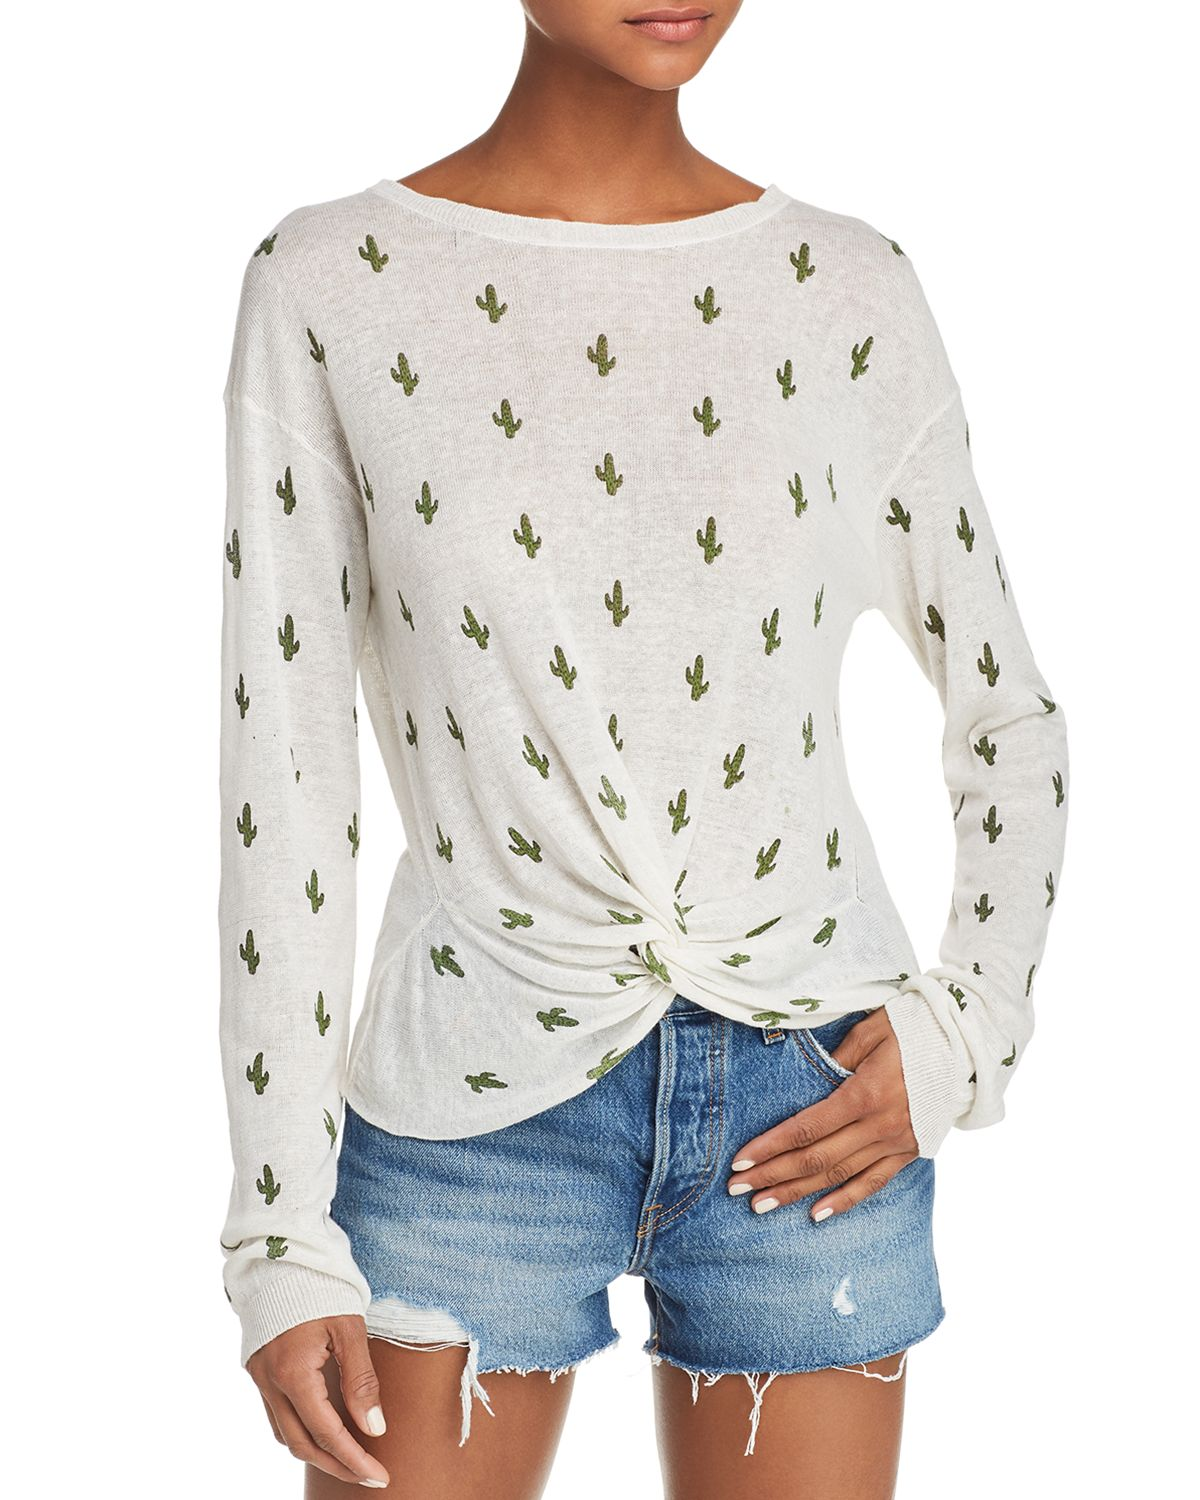 Cactus Print Twist Front Sweater   100 Percents Exclusive  by Aqua